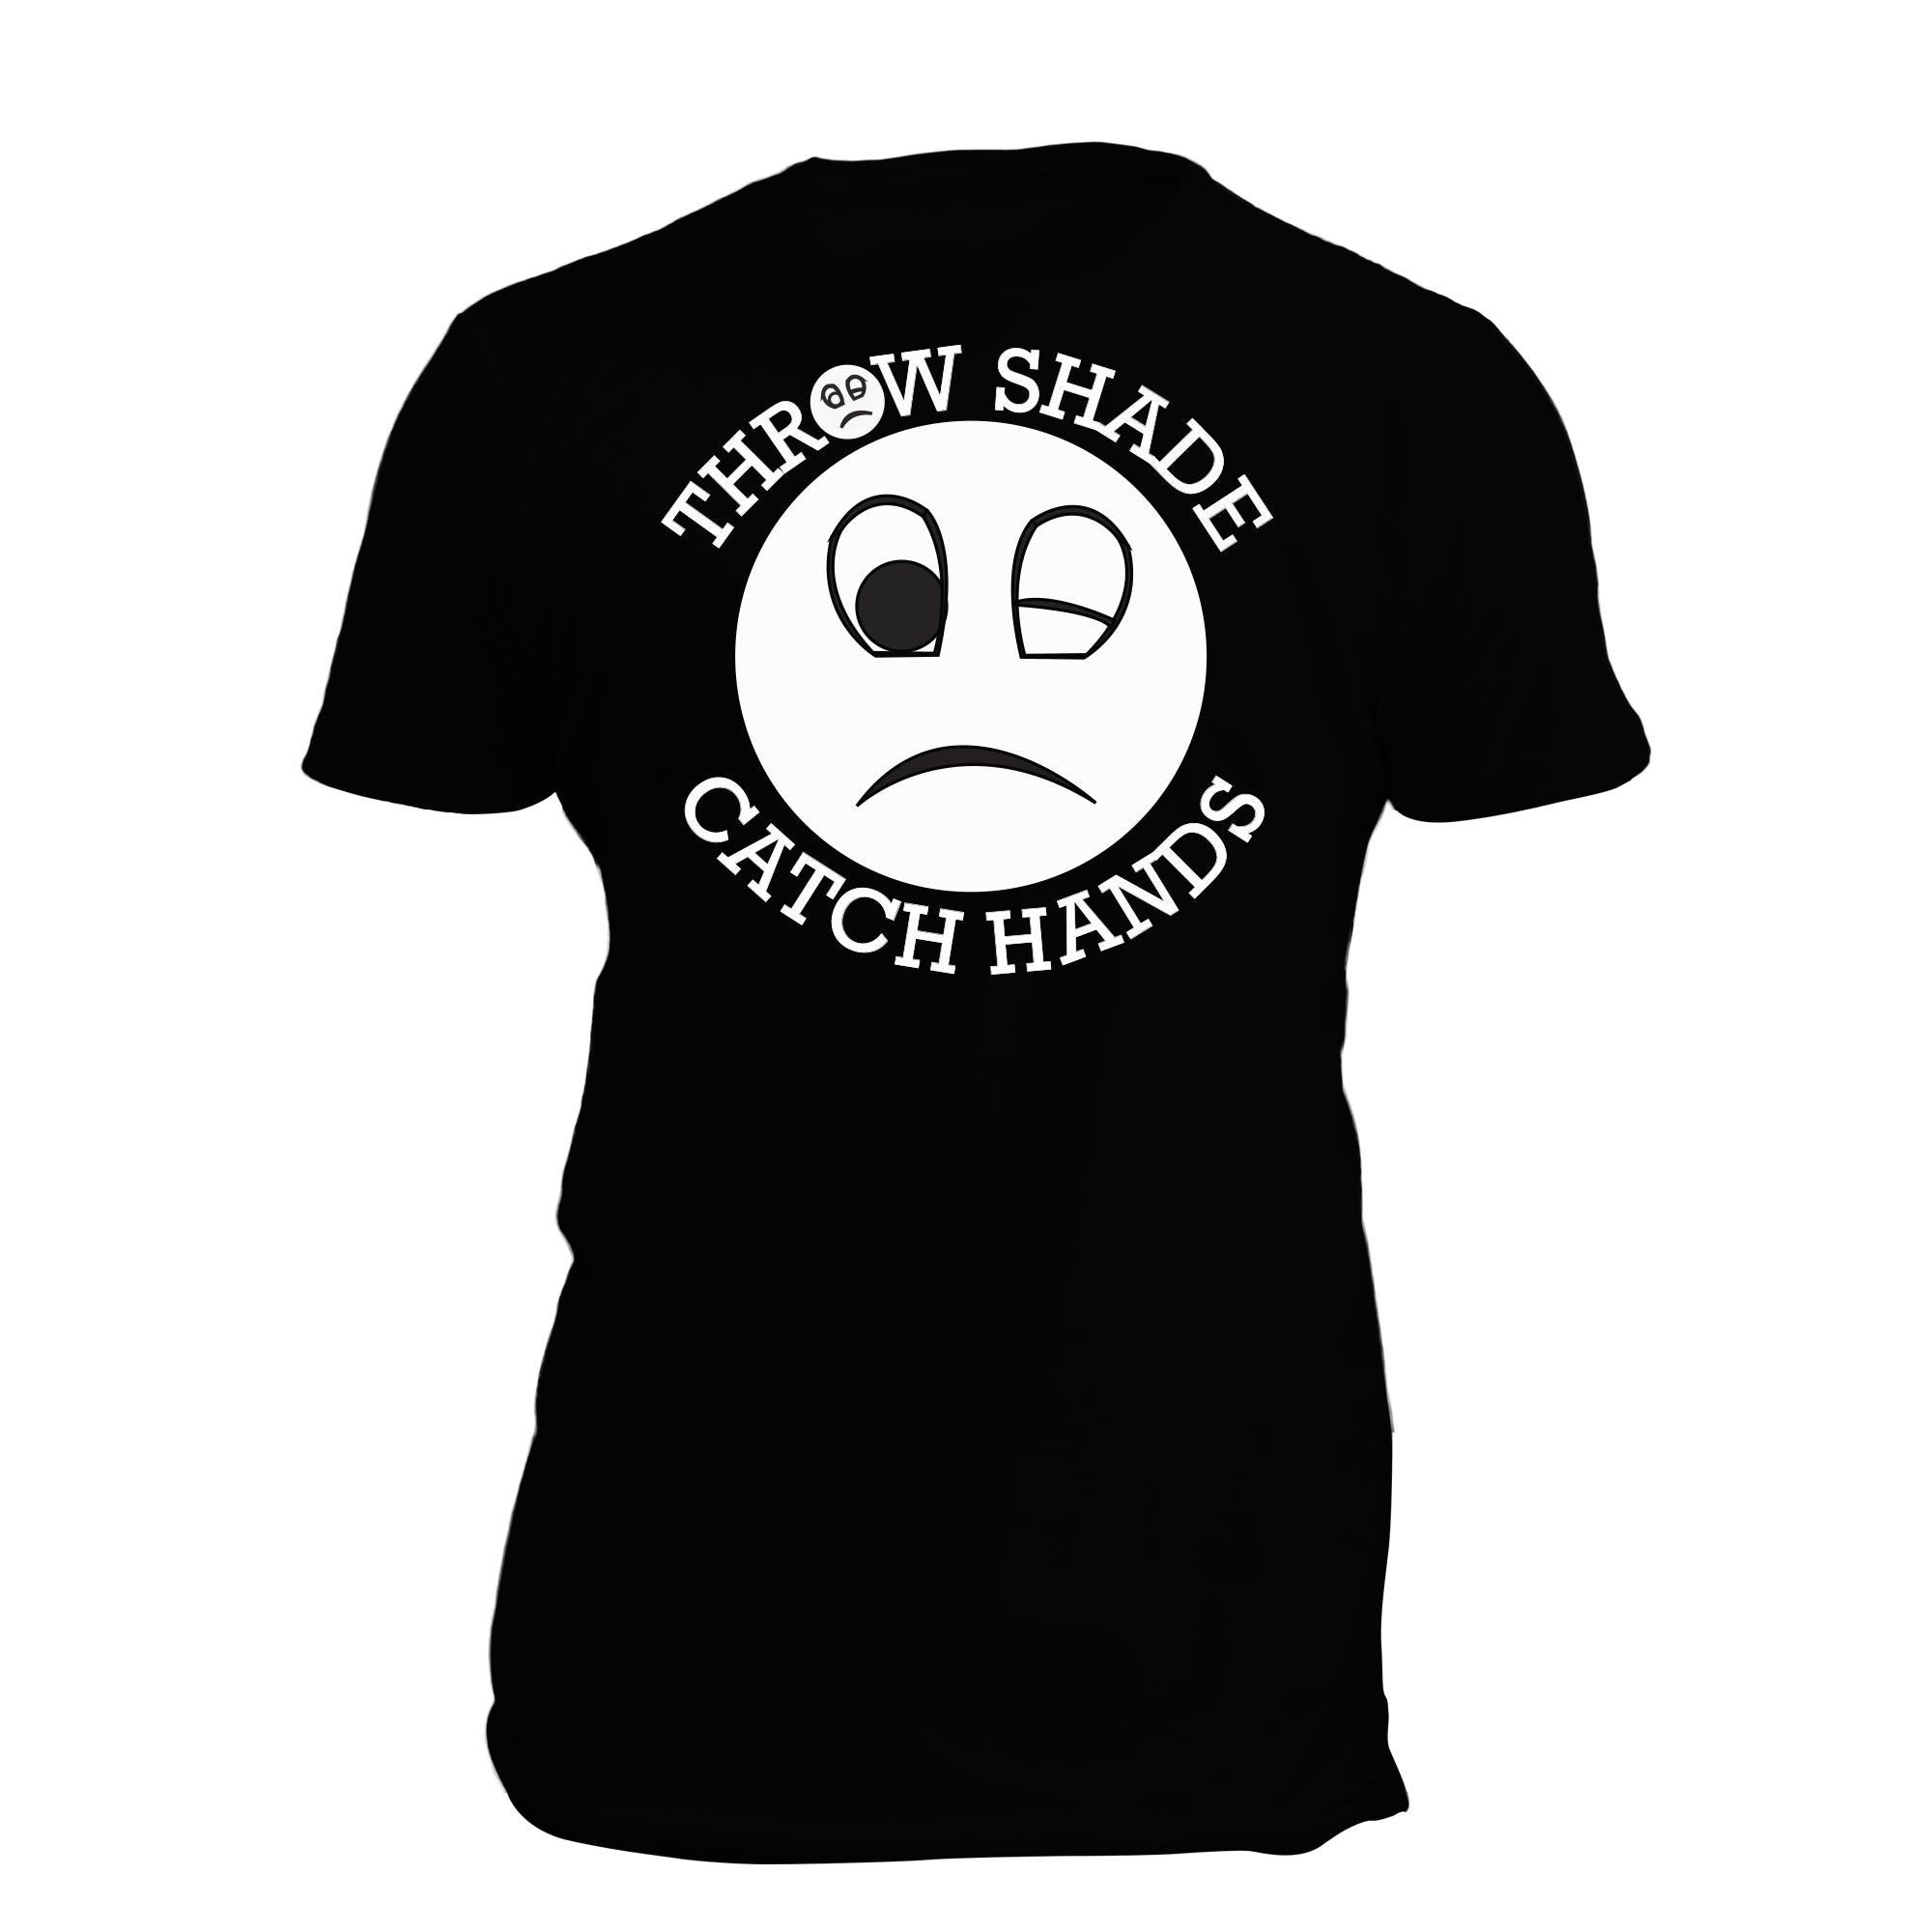 Throw Shade Catch Hands 2 SS Full T Shirt Black